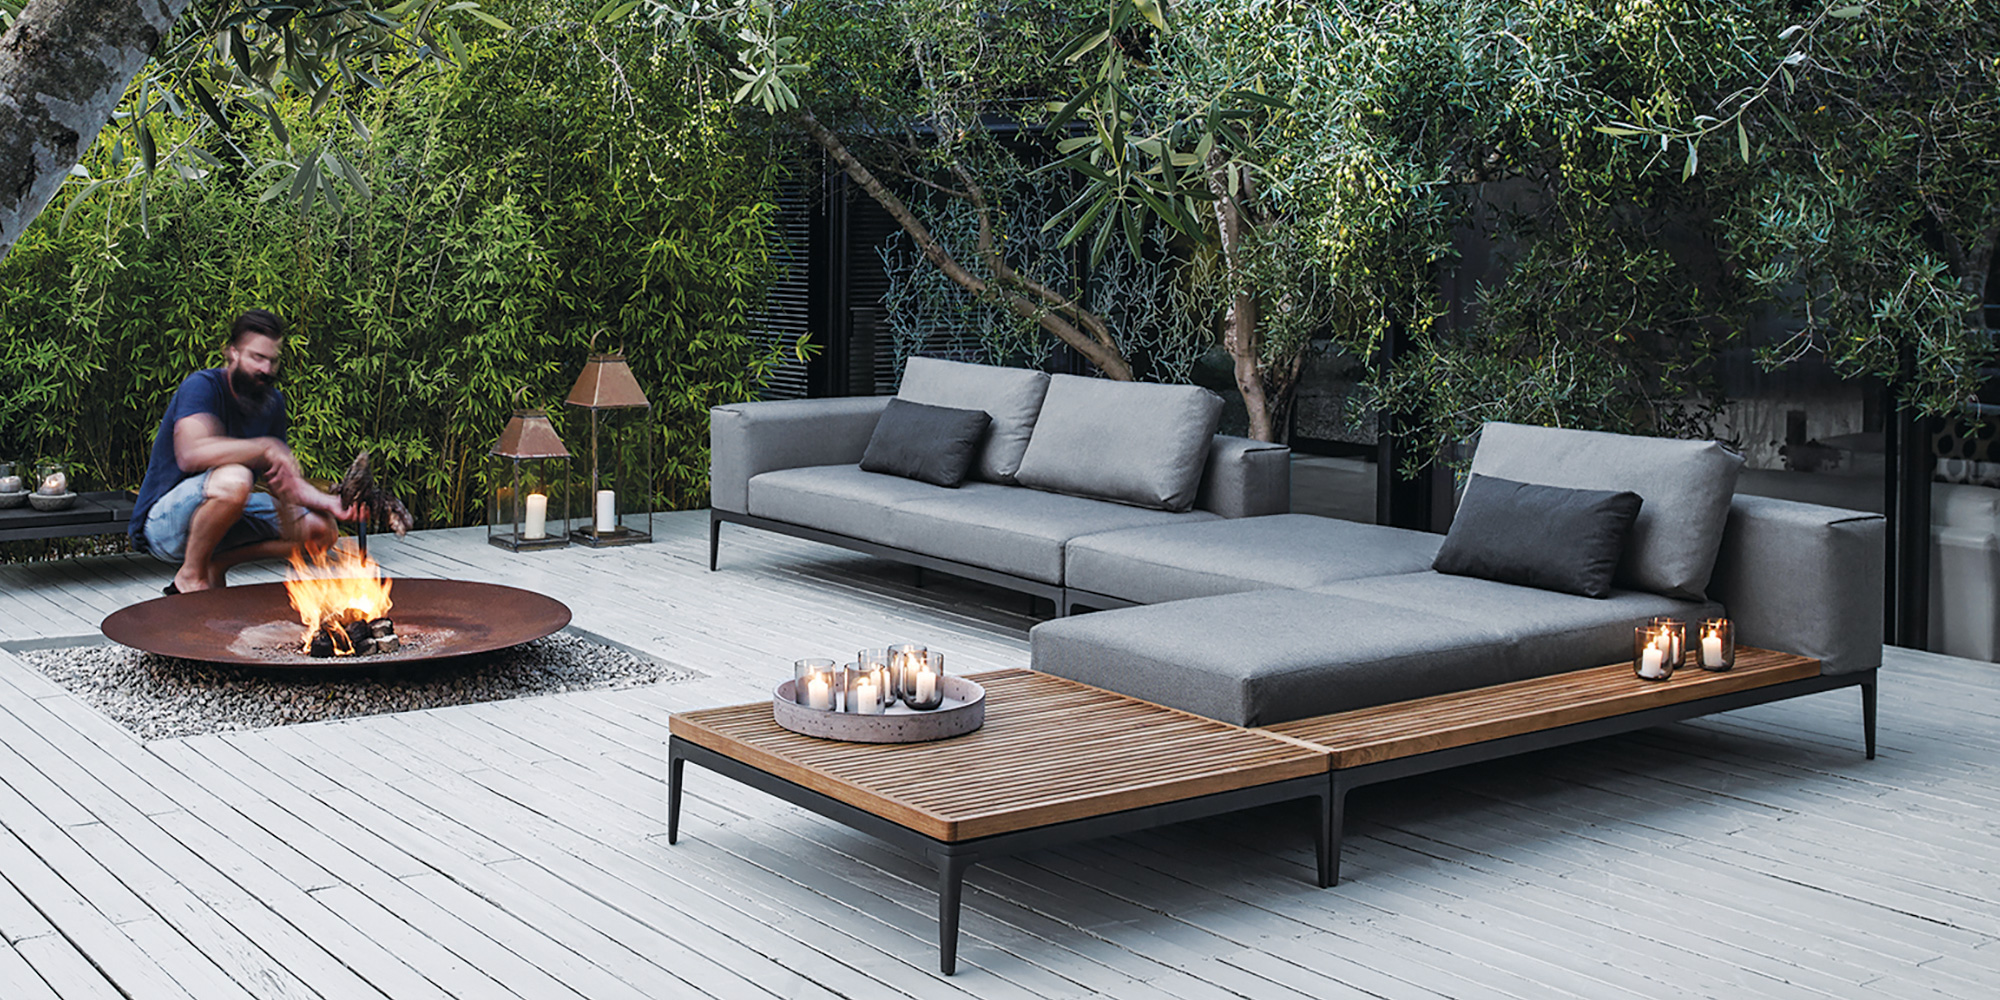 Modern Outdoor Furniture - Down to Earth Living on Designer Outdoor Living  id=90688